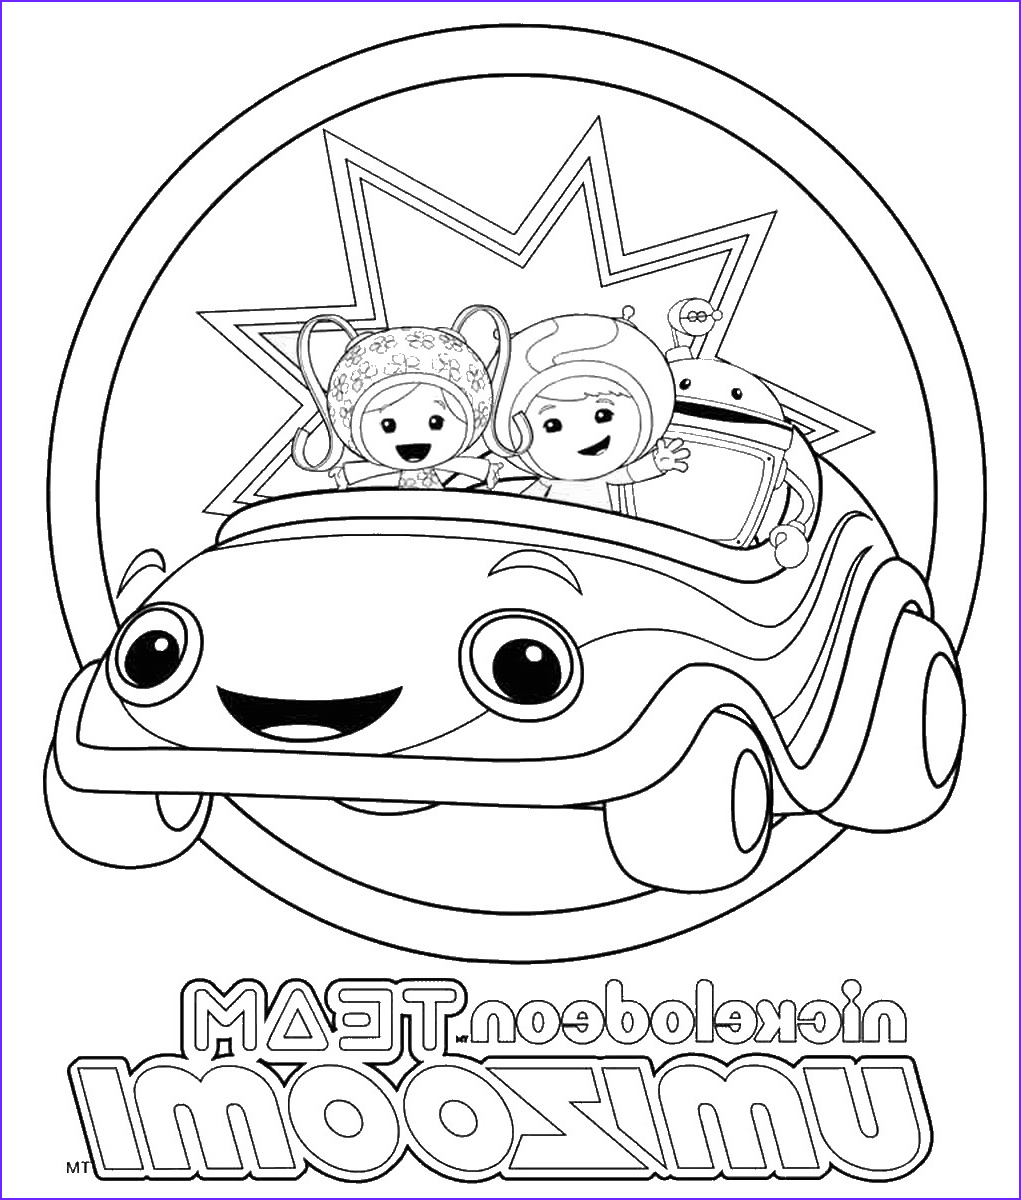 team omizoomi coloring pages